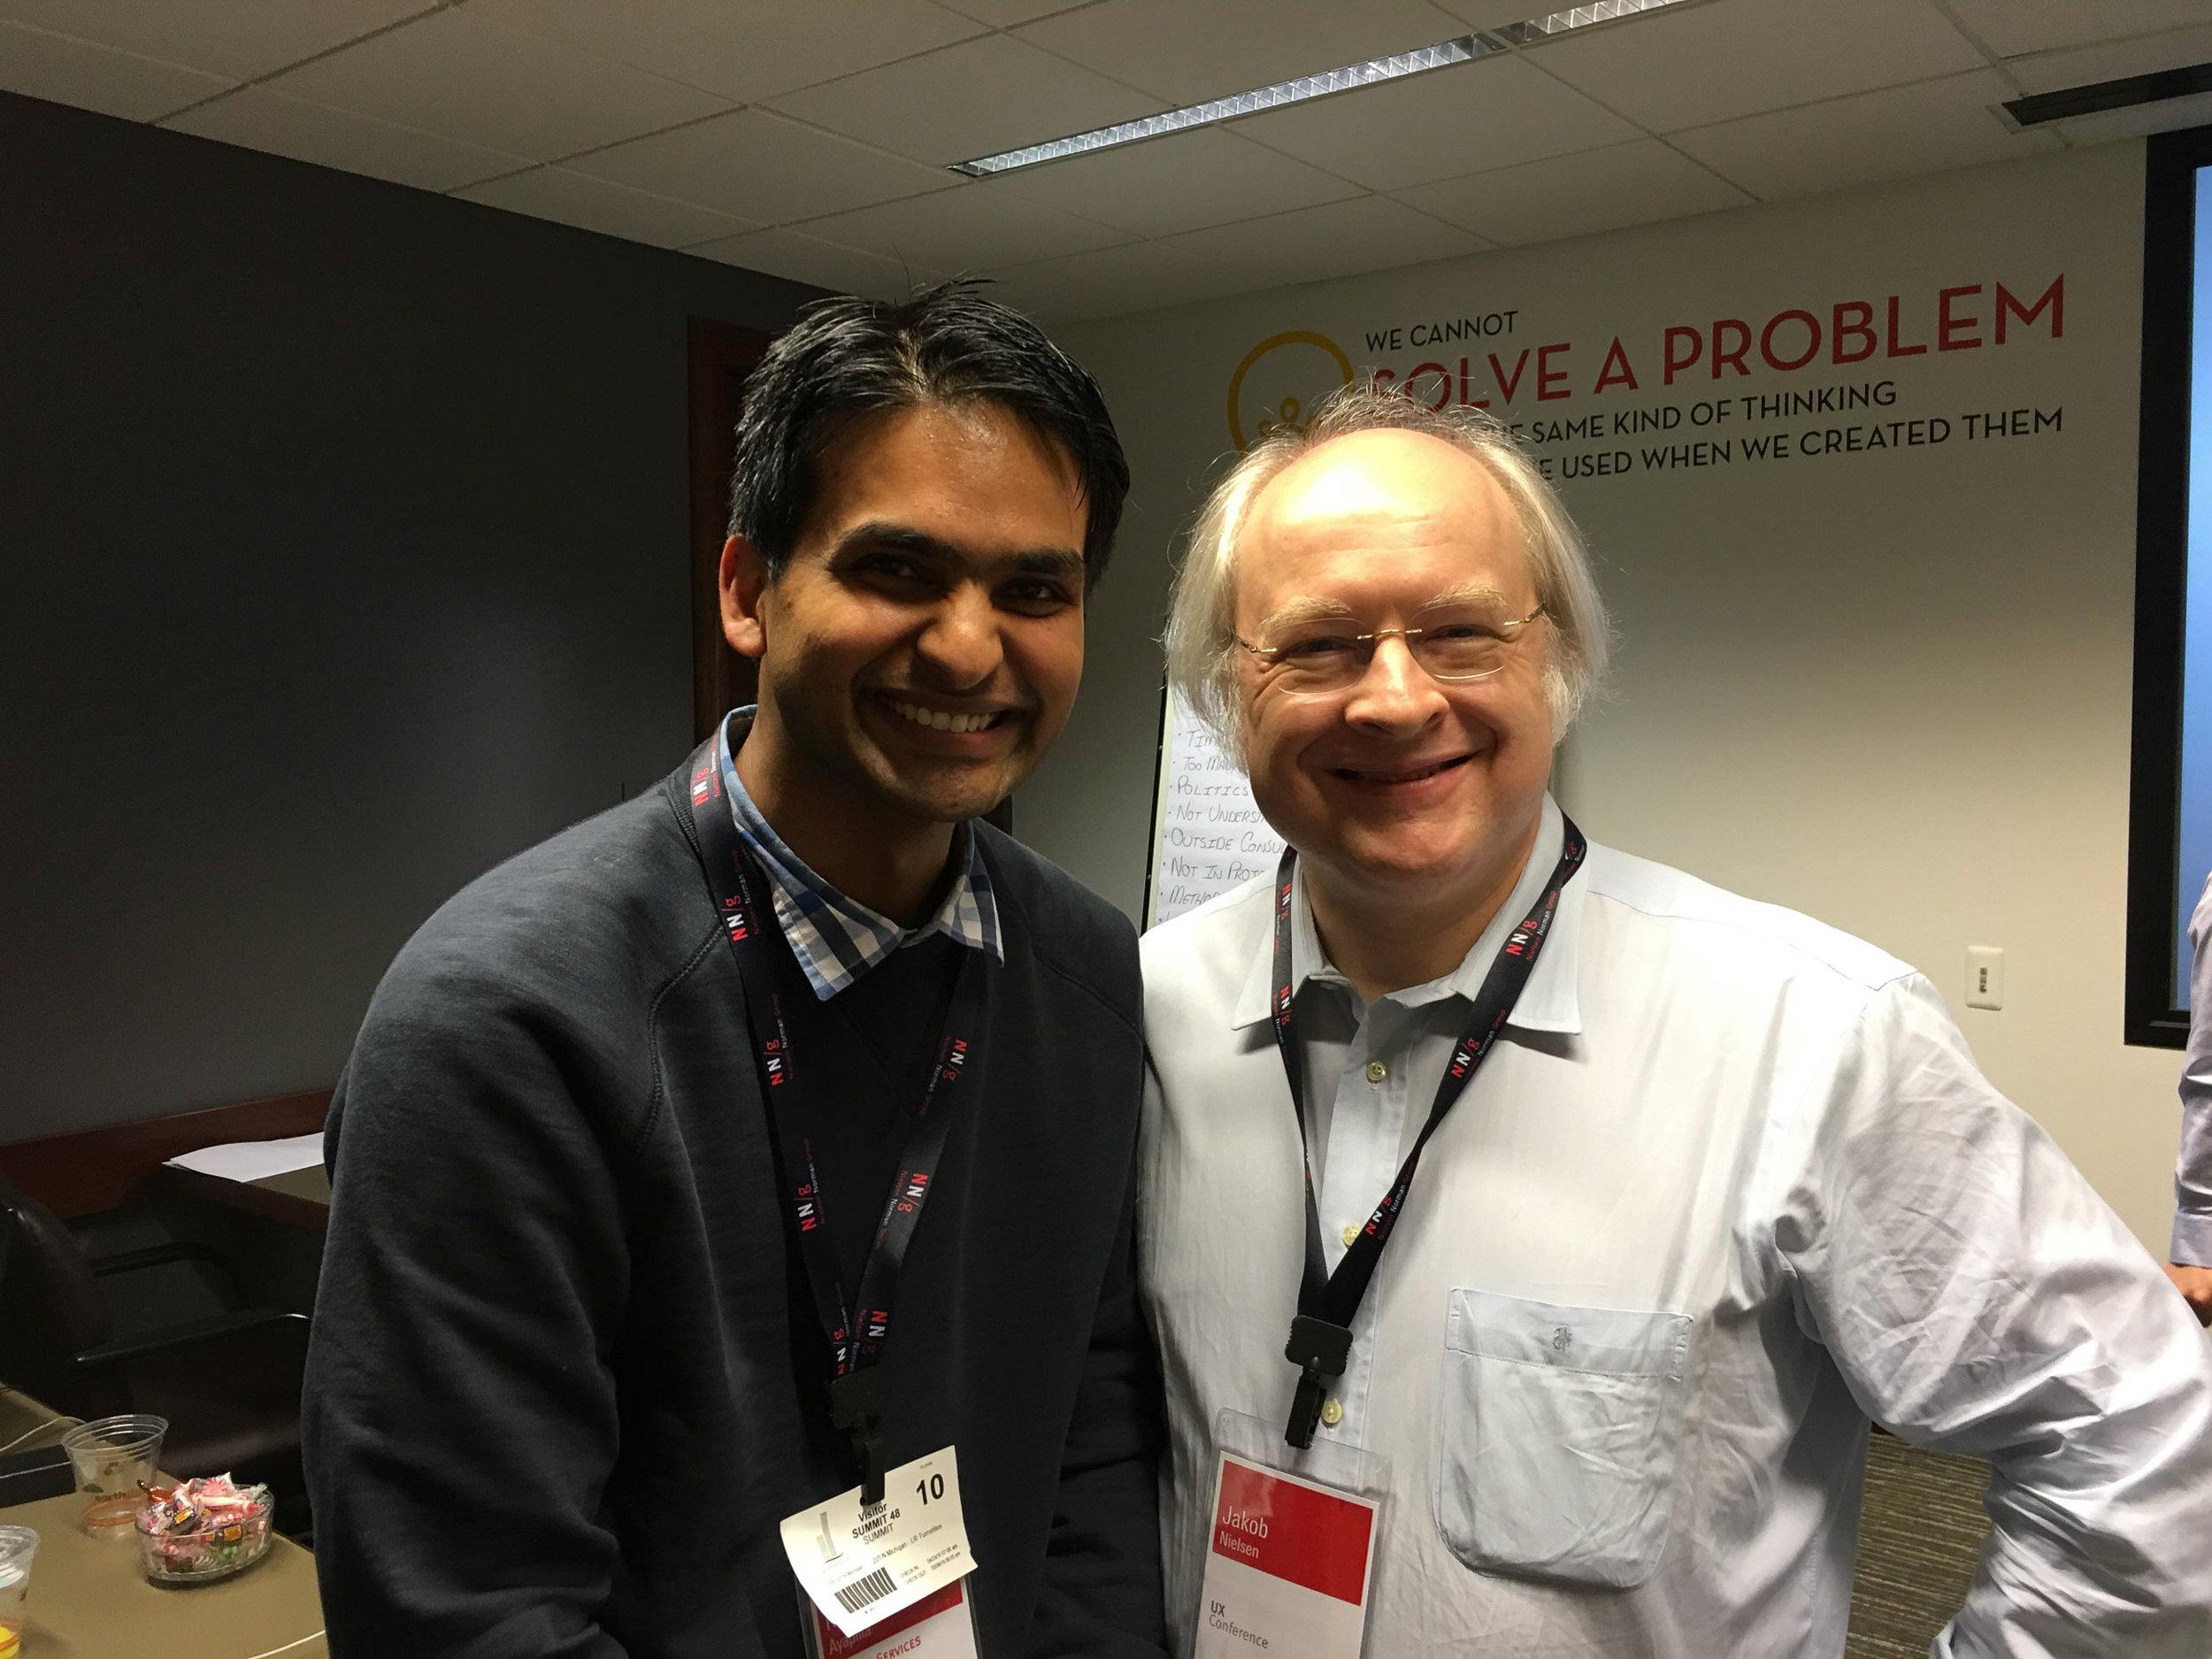 With Jakob Nielsen